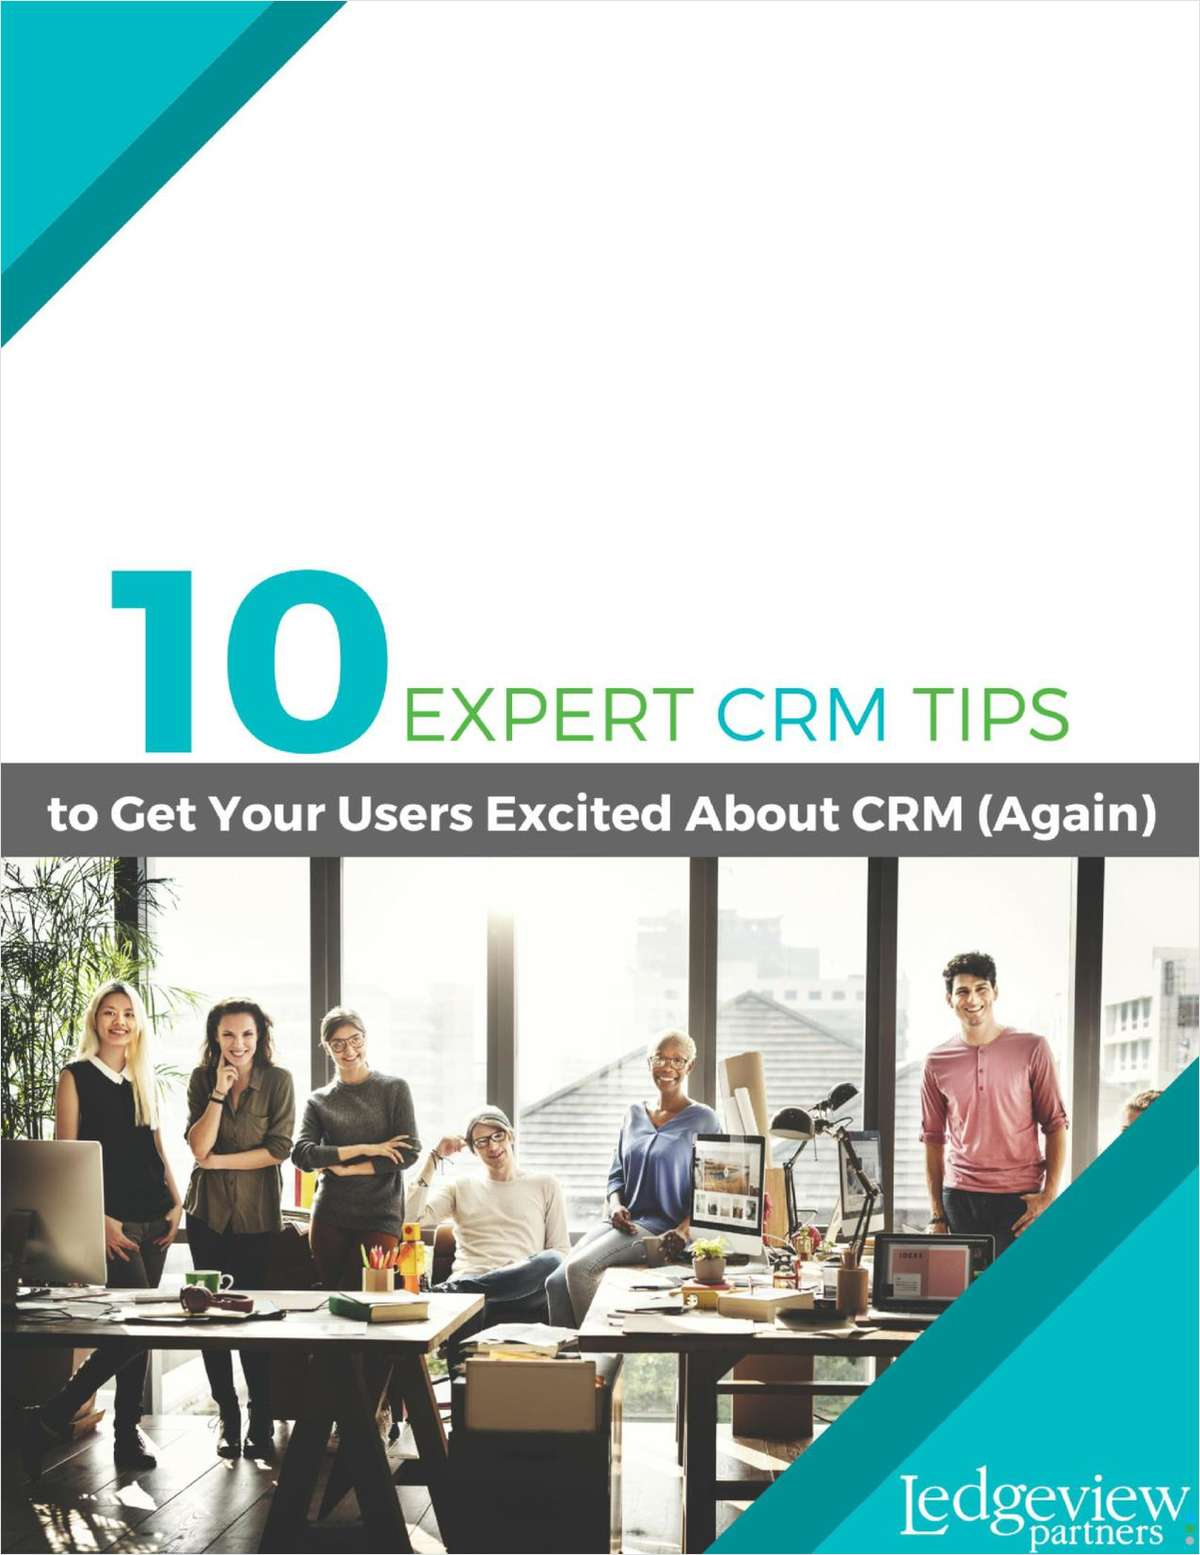 10 Expert CRM Tips to Get Your Users Excited About CRM Again